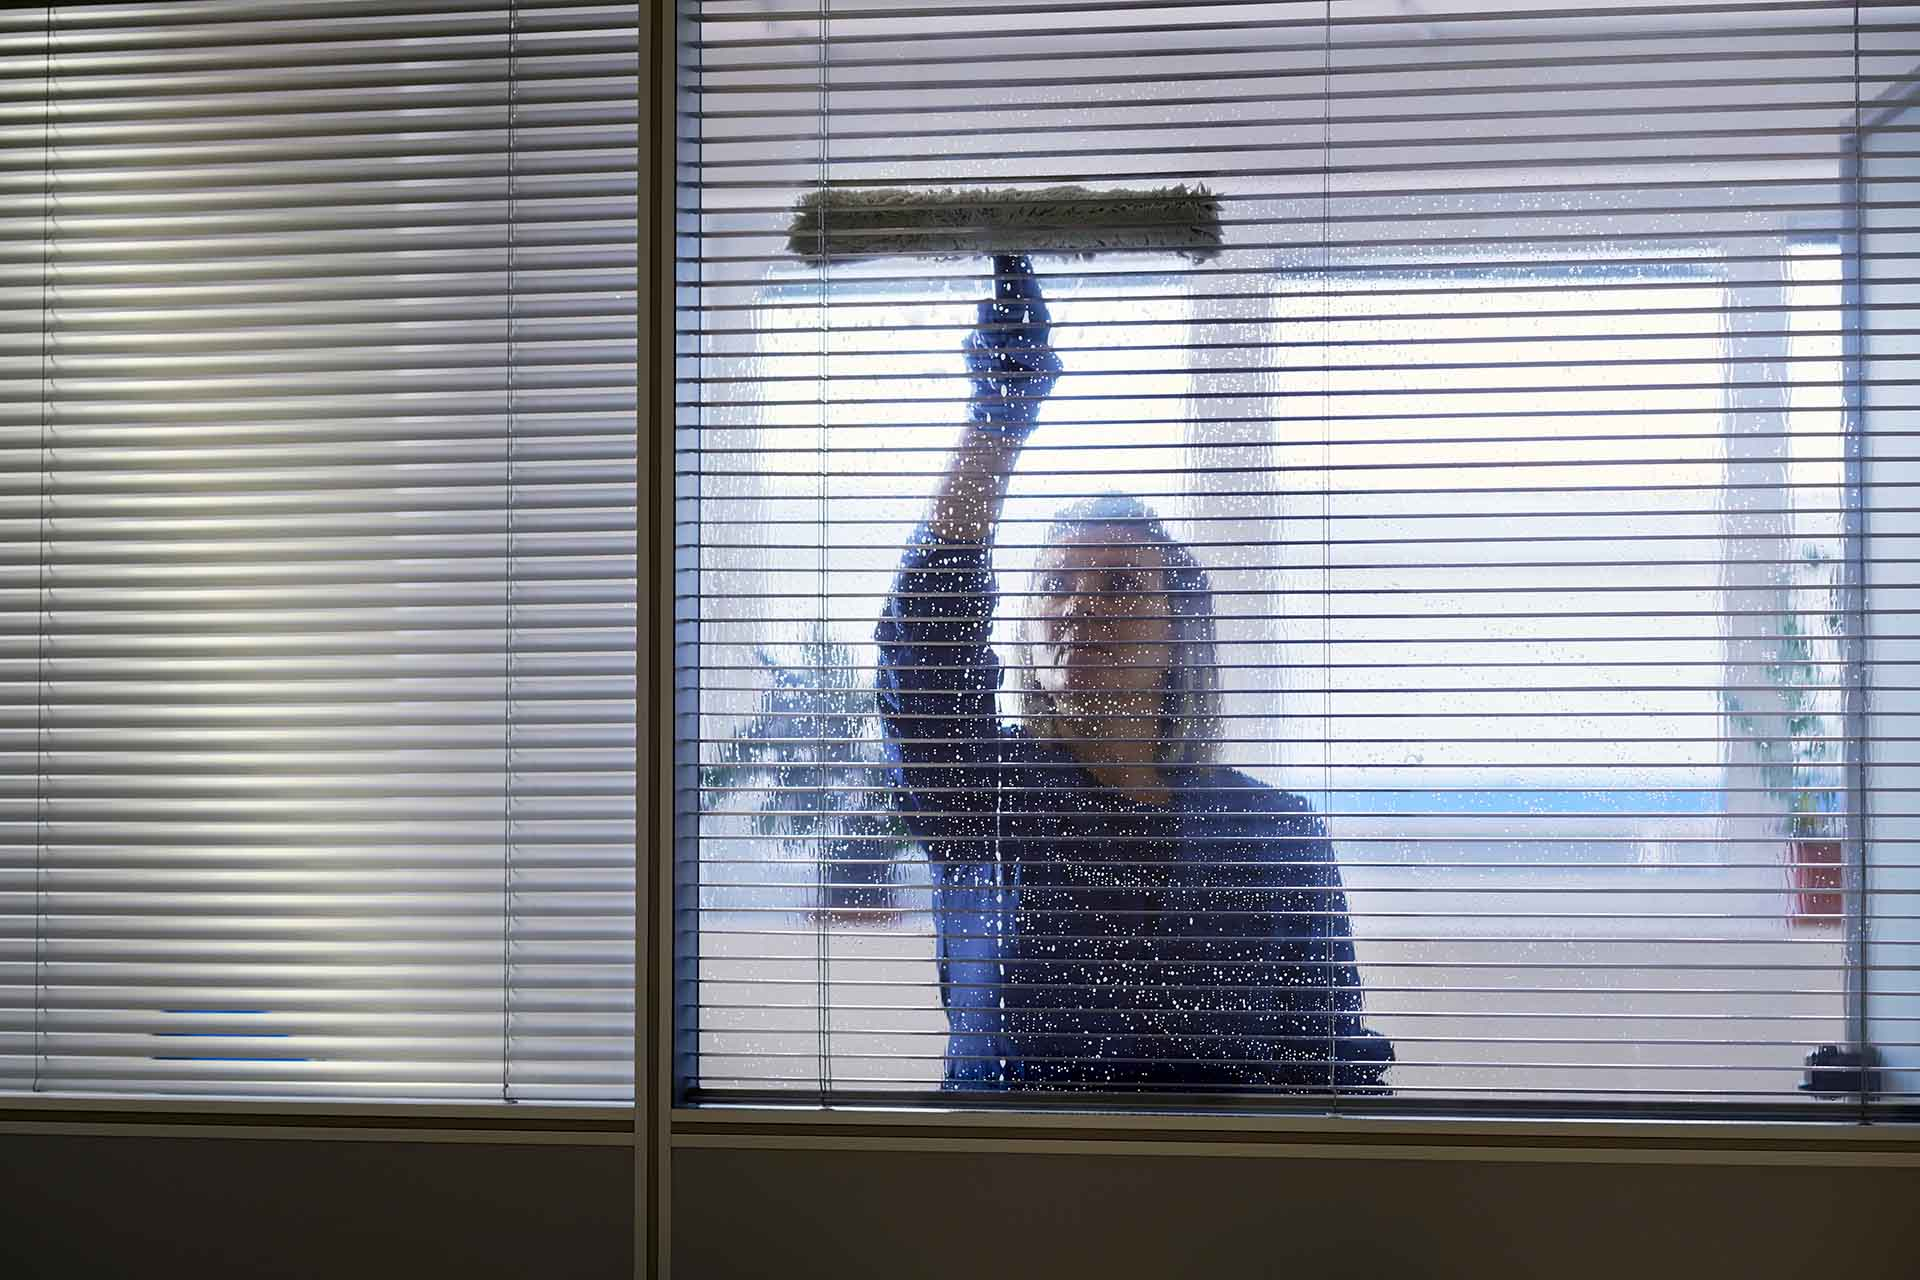 How do you maintain cleanliness in the workplace?